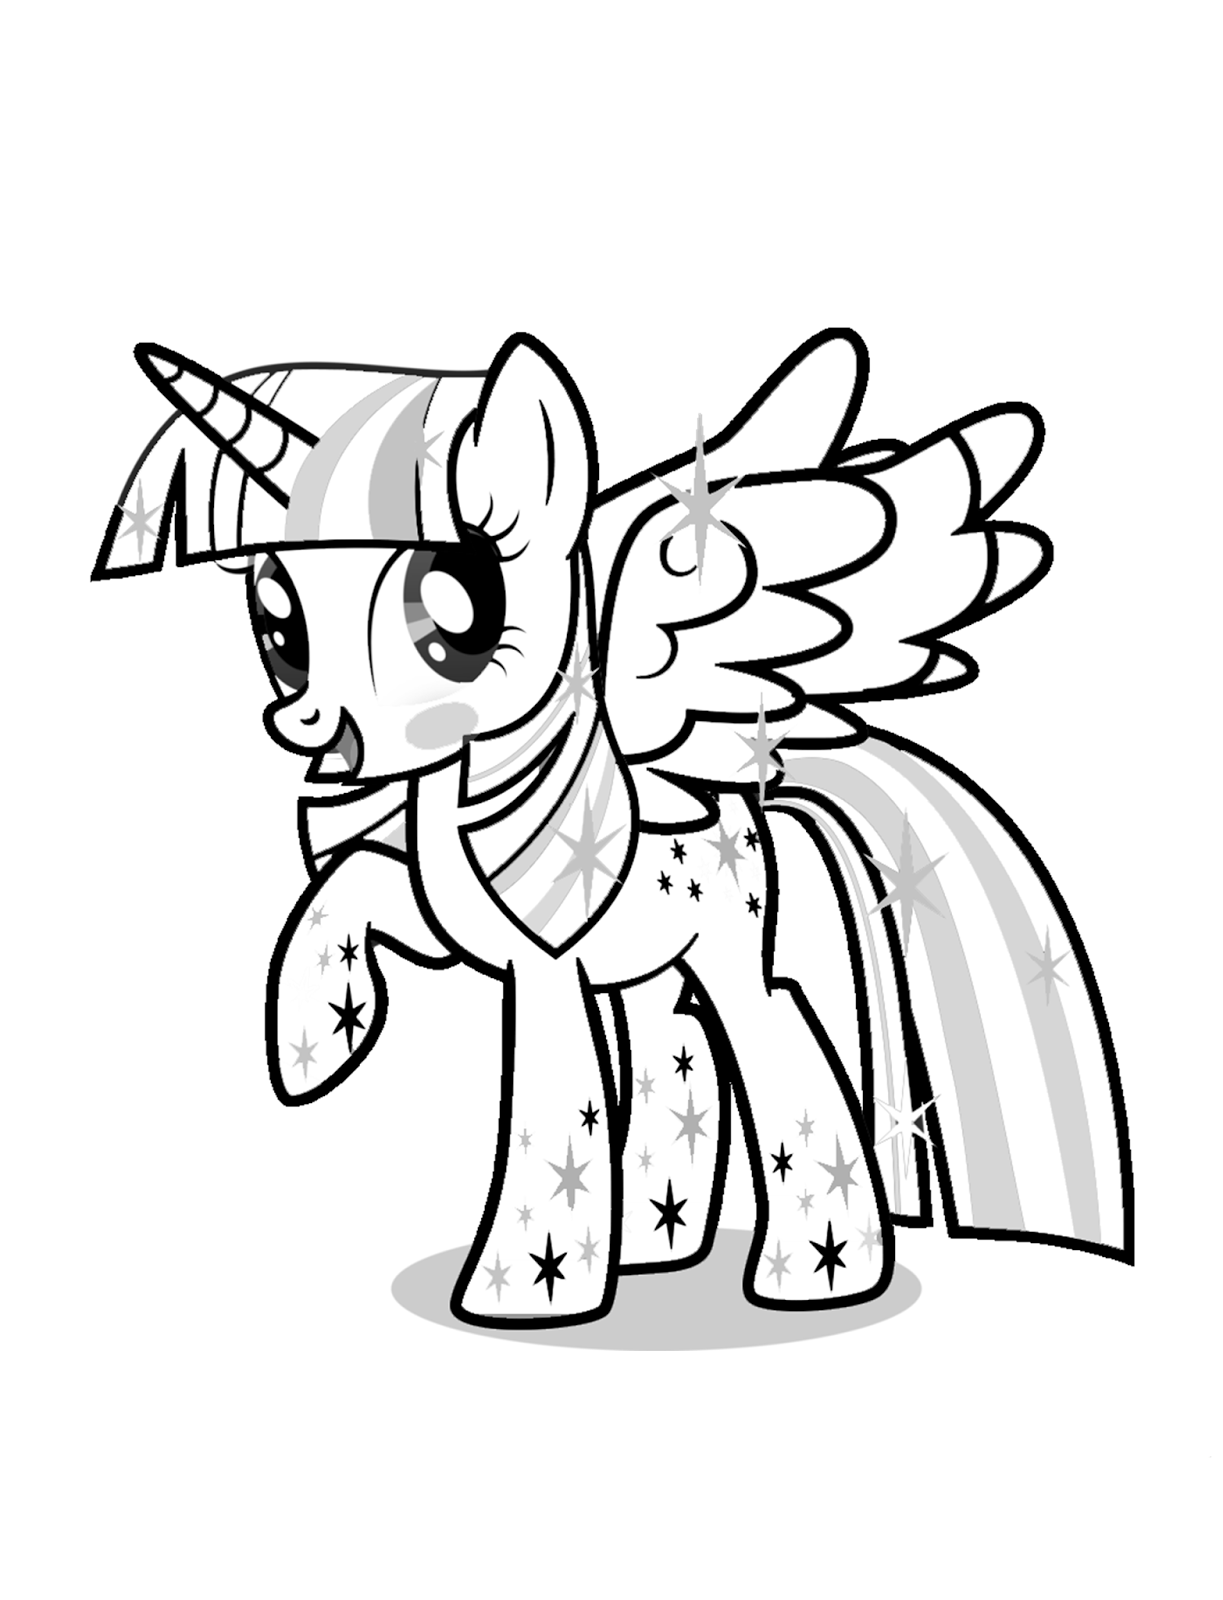 twilight coloring pages twilight coloring pages to download and print for free twilight coloring pages